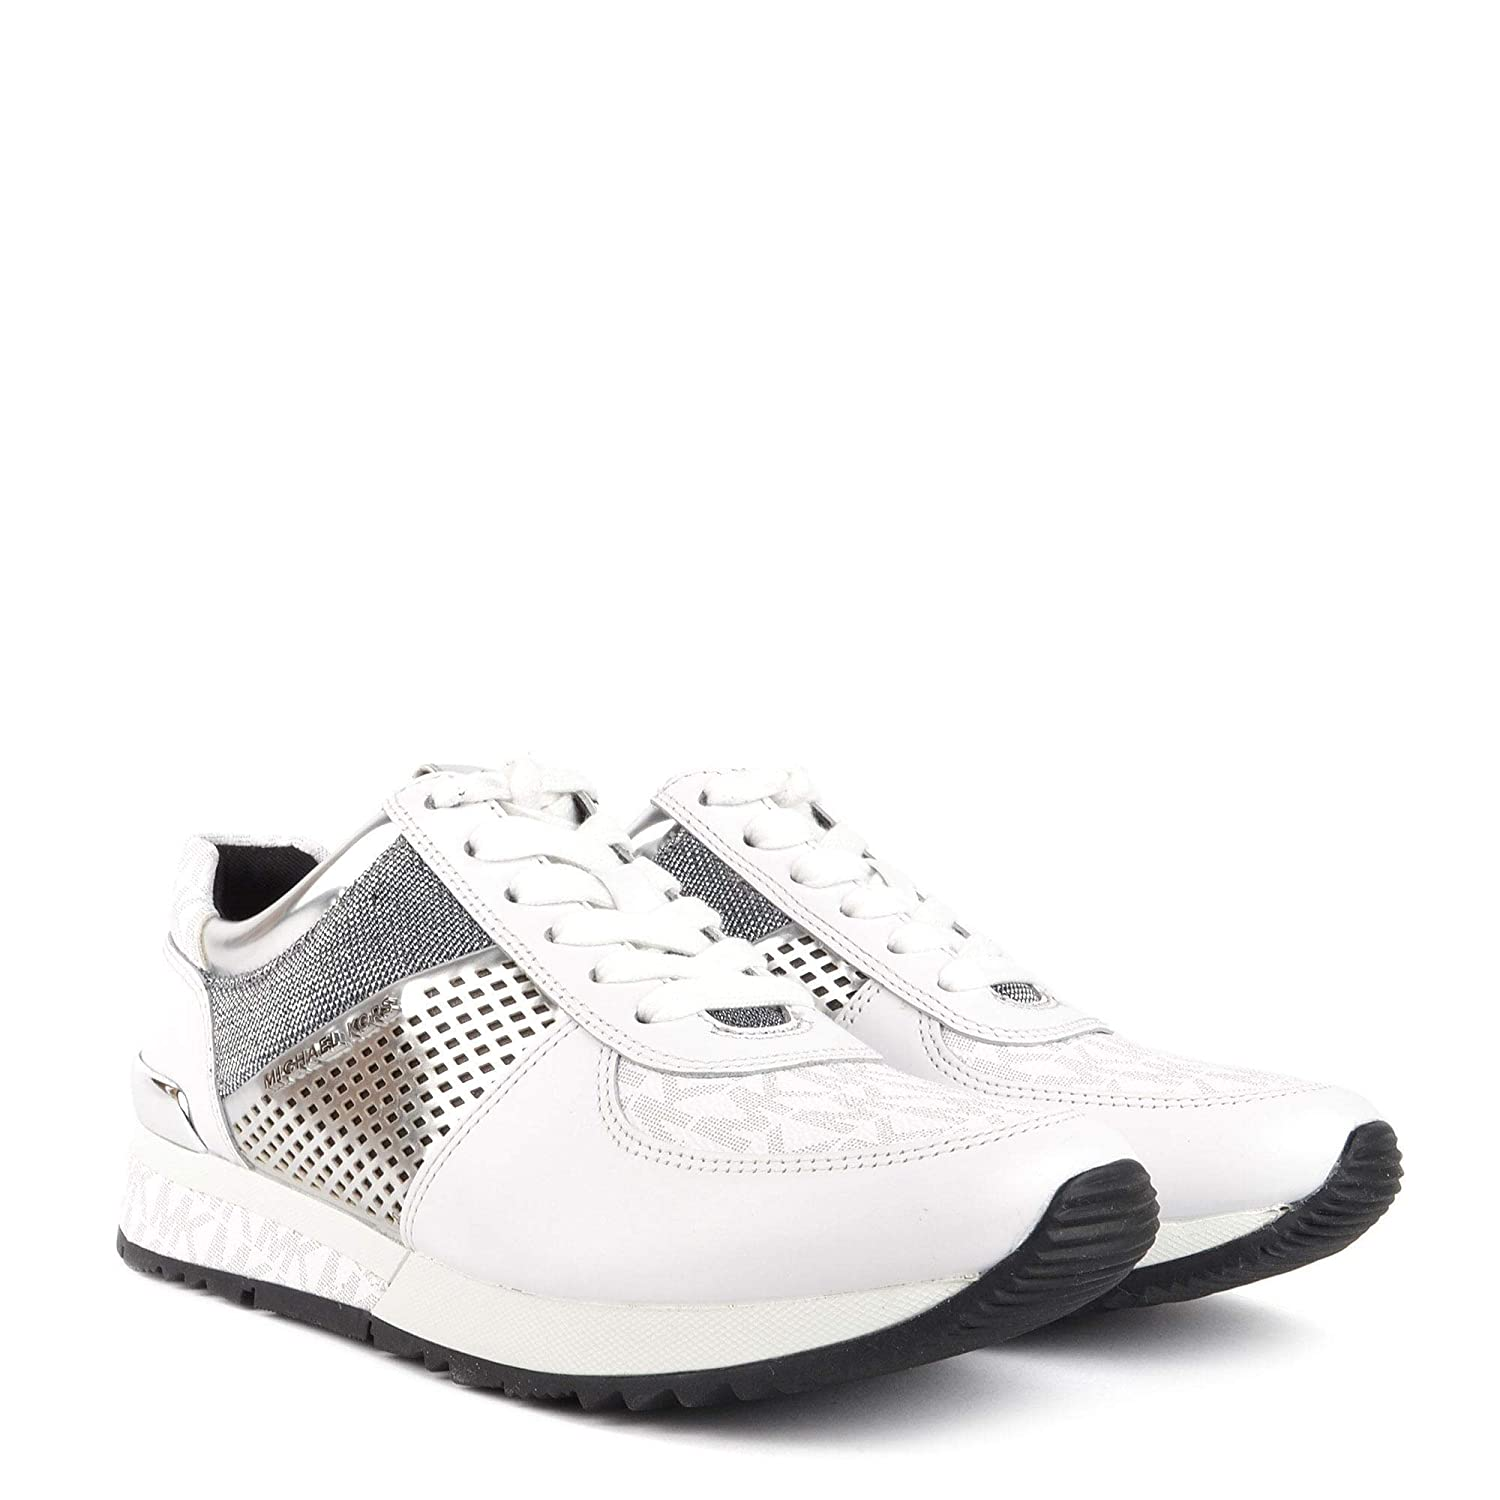 Michael Kors Mkors Allie Wrap Trainer, Zapatillas para Mujer: Amazon.es: Zapatos y complementos